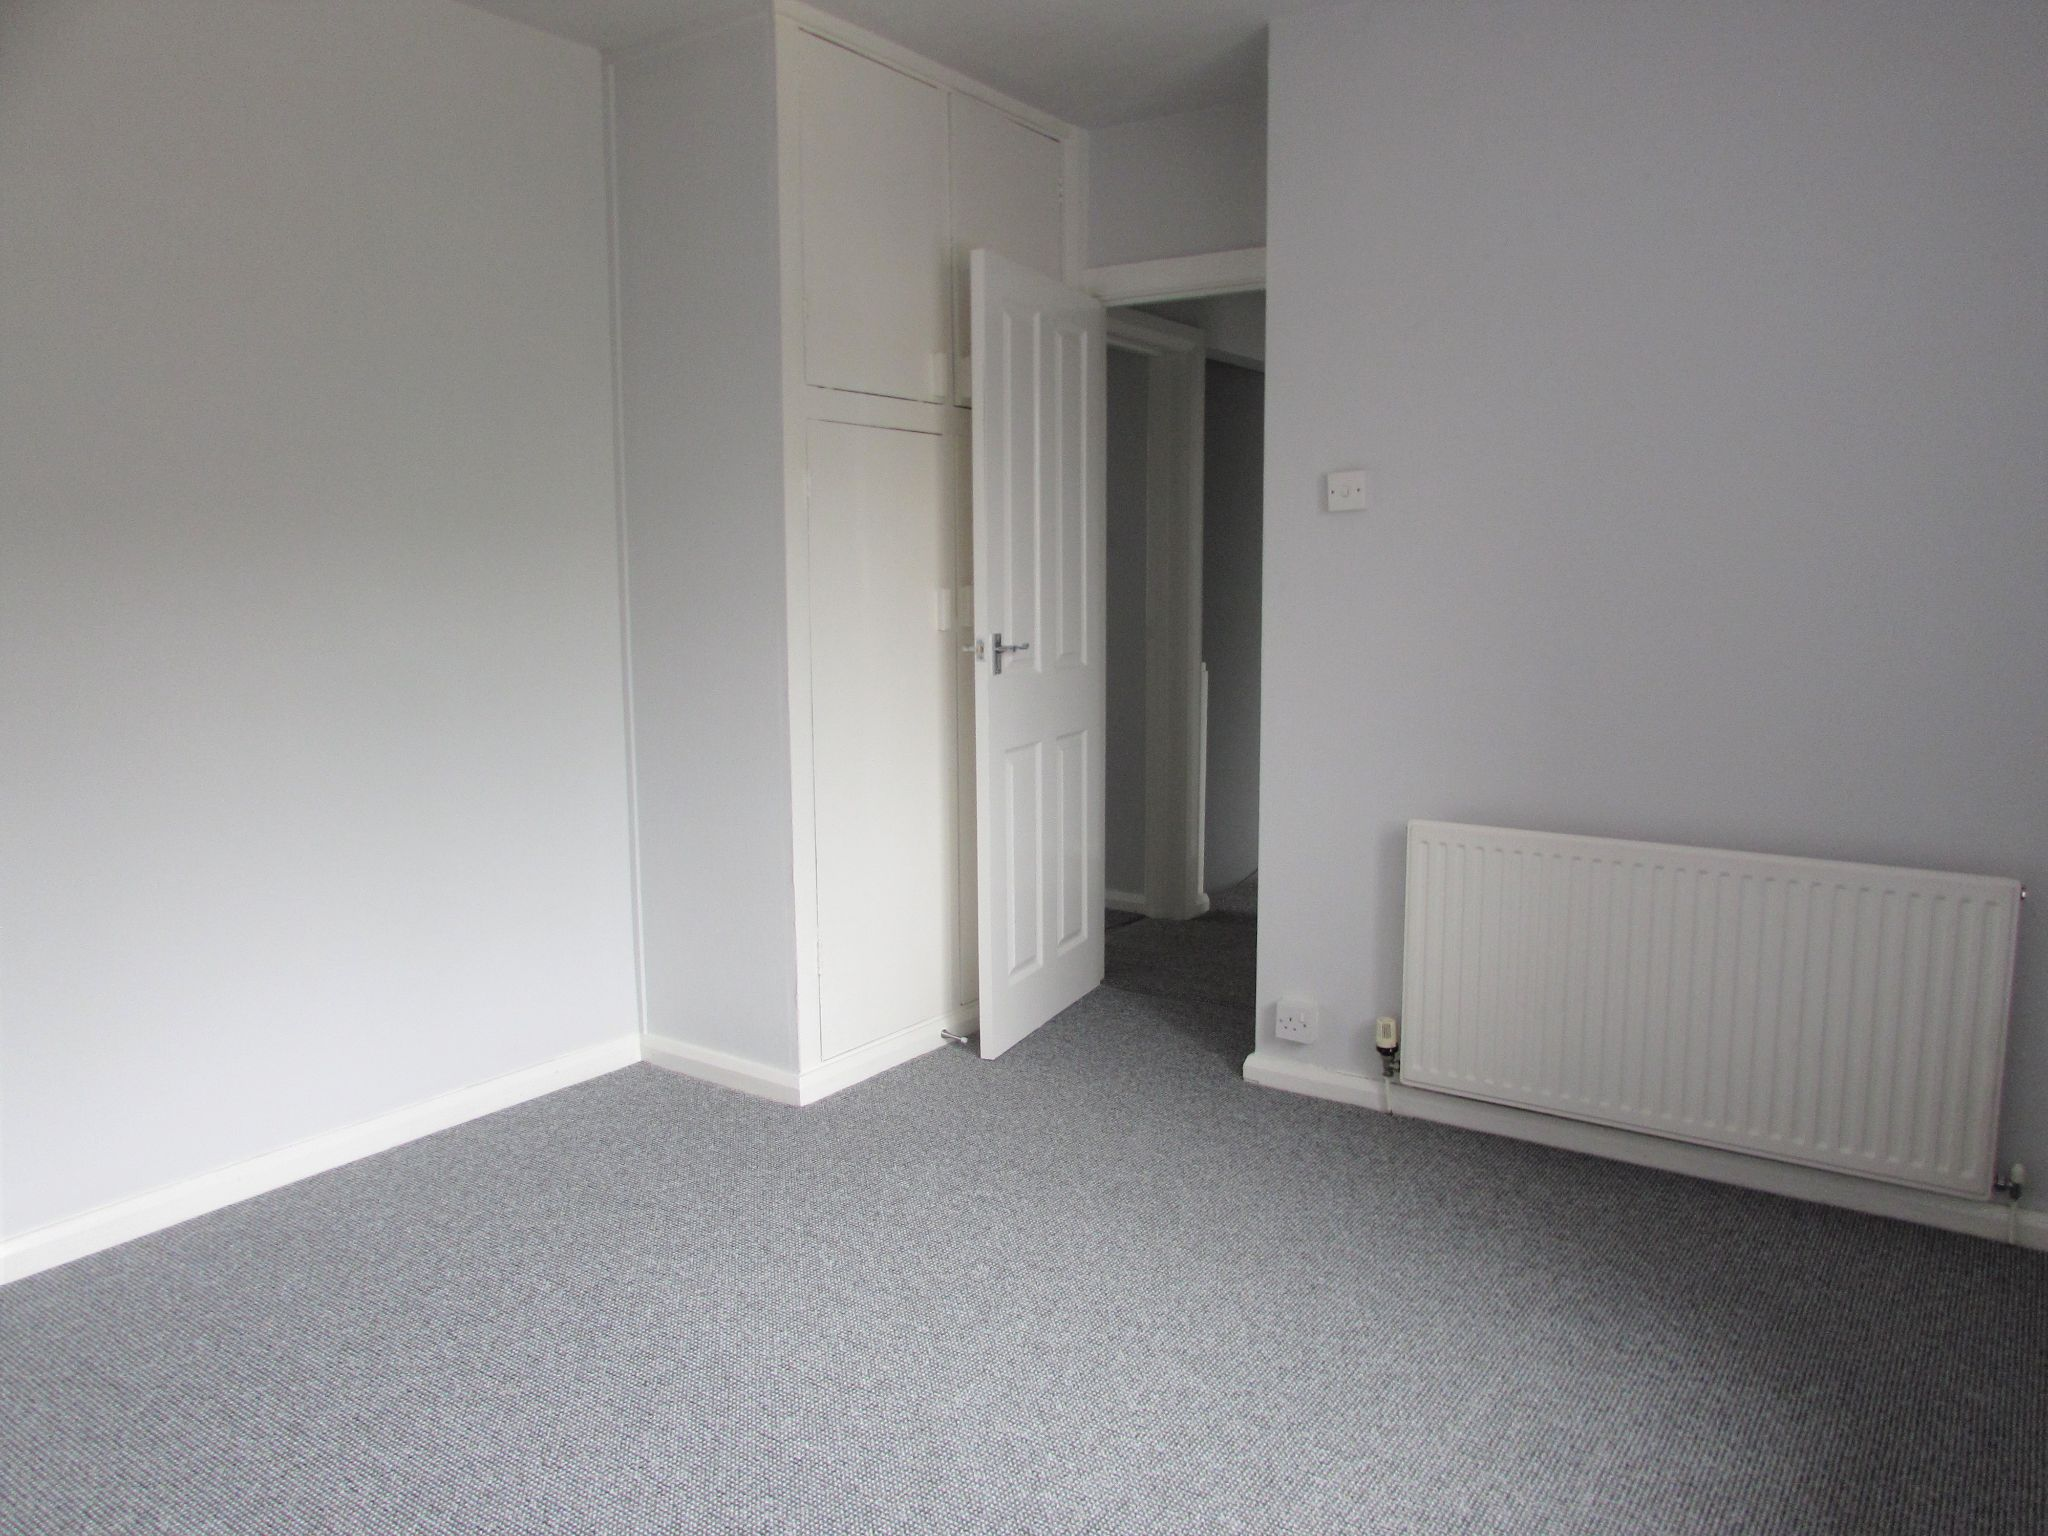 3 Bedroom Mid Terraced House For Sale - Bedroom One